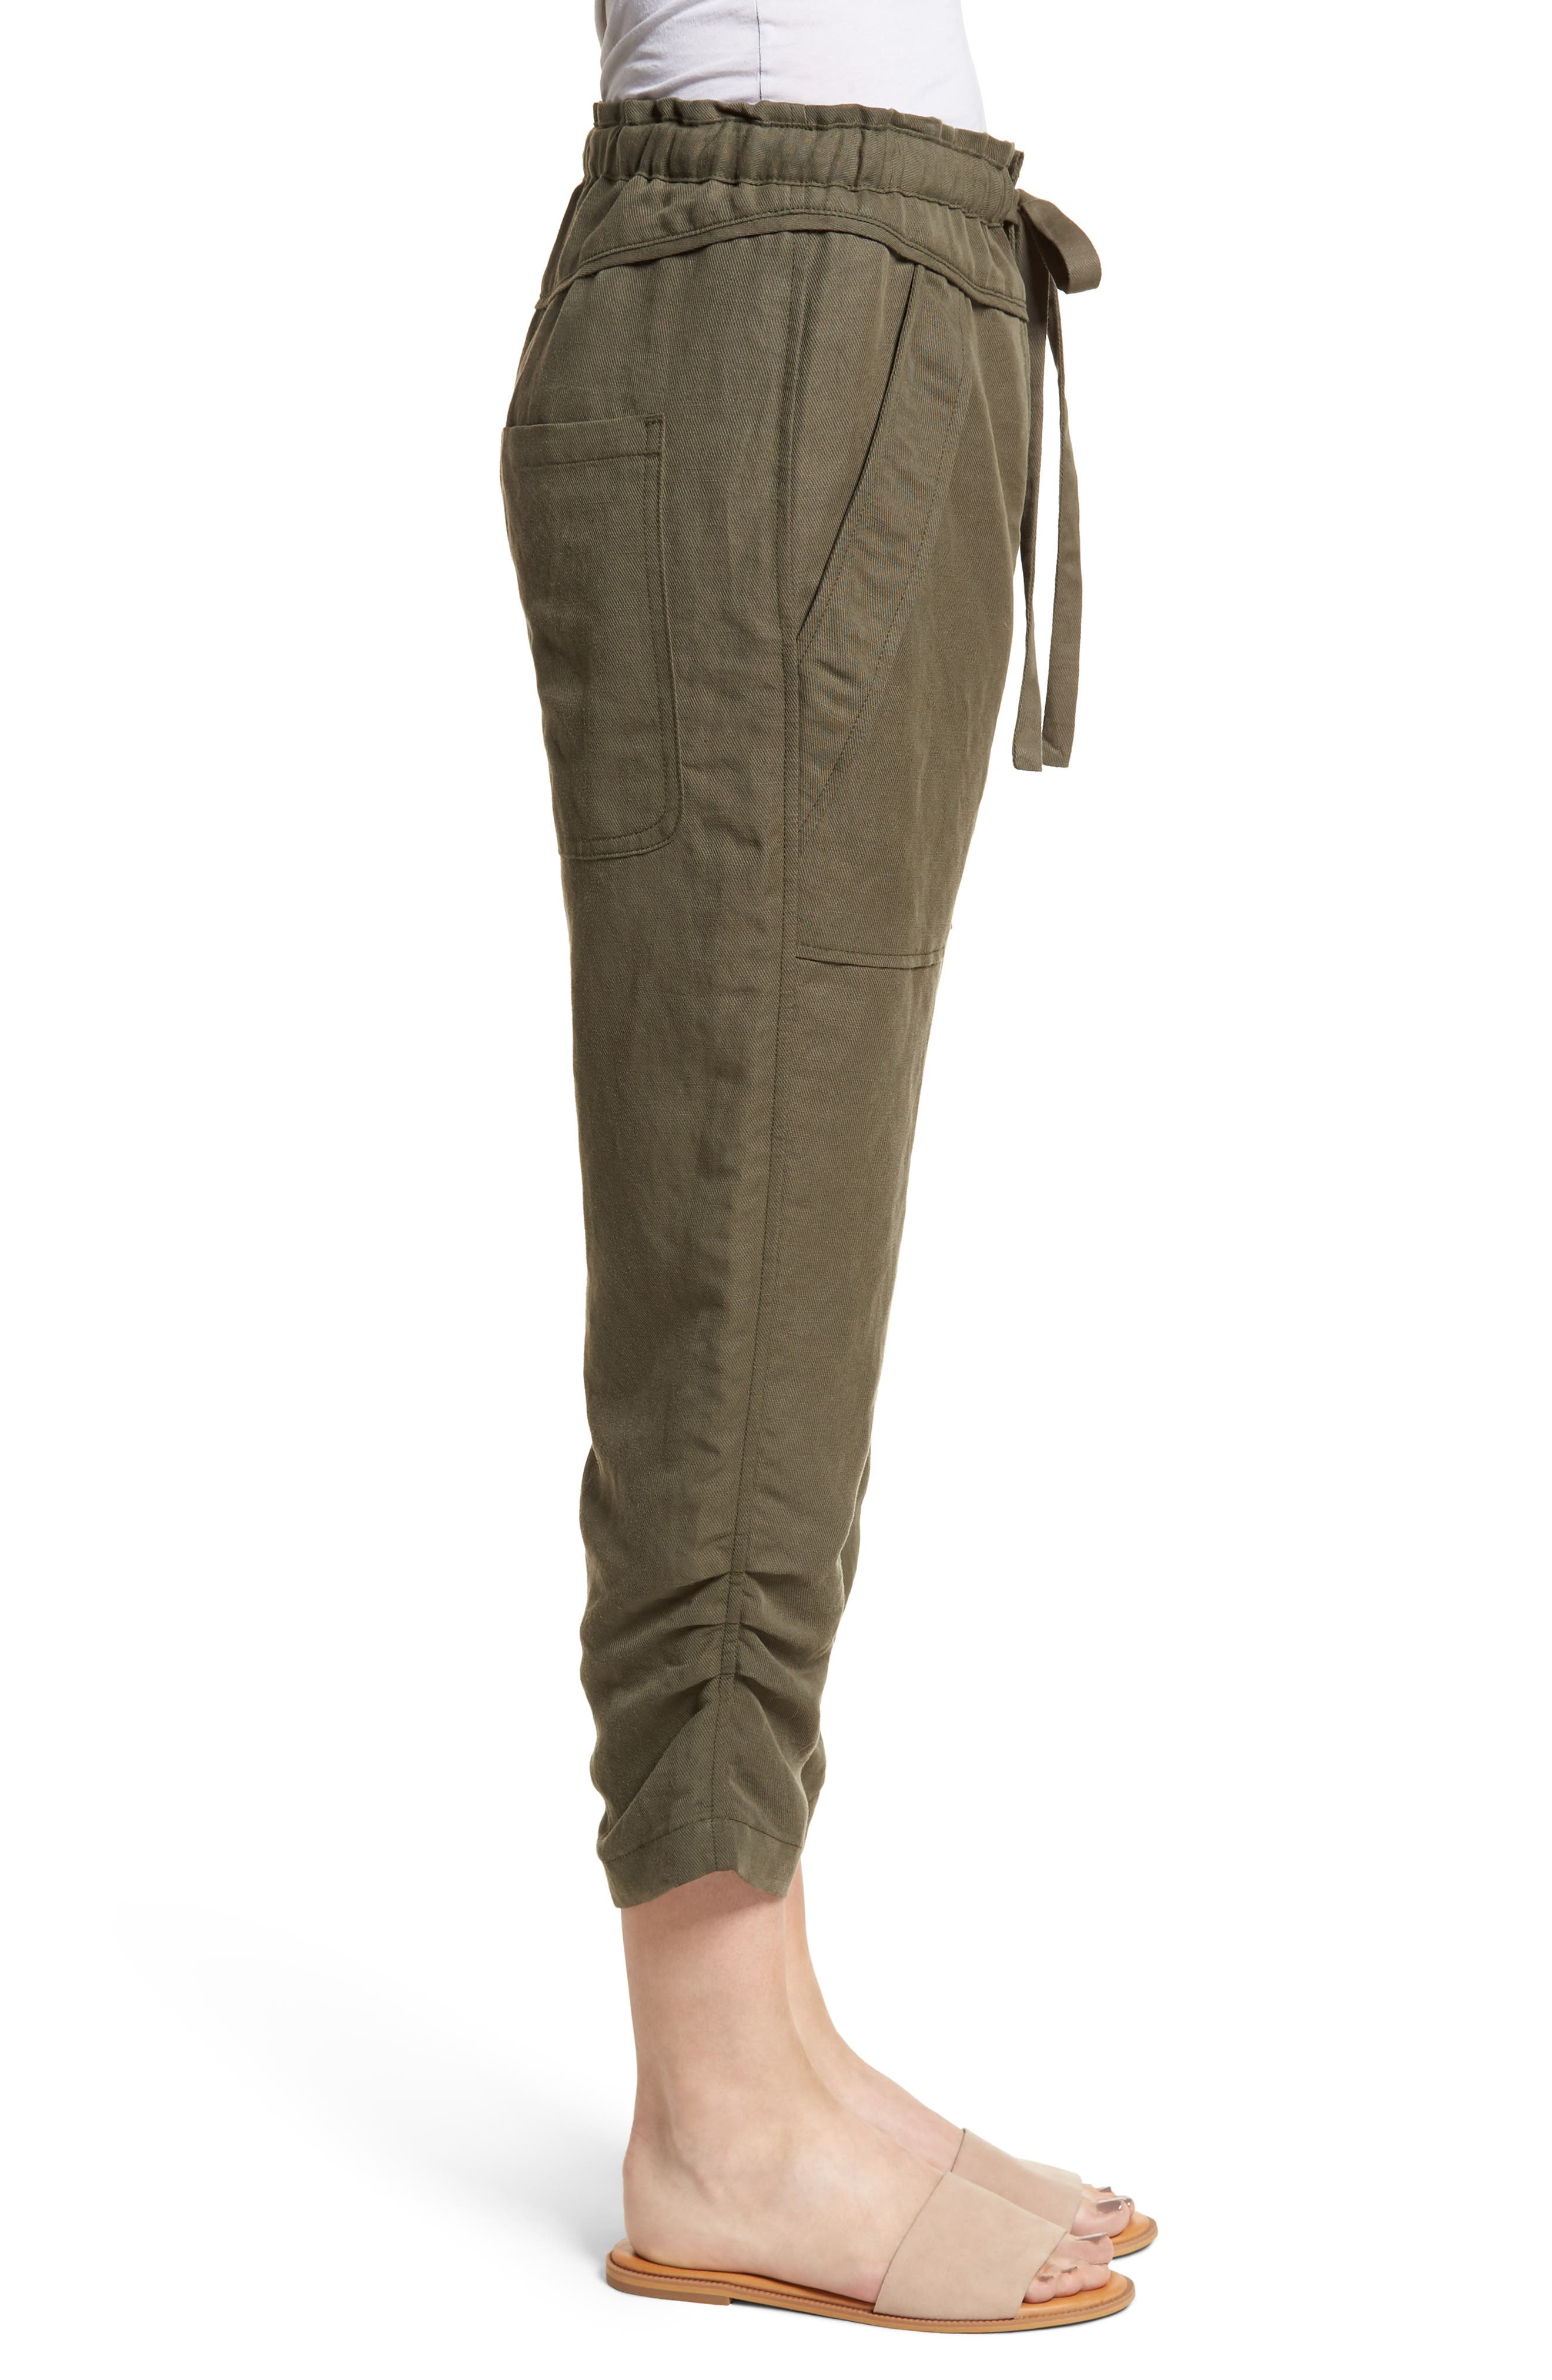 Stellina High Waist Pants,                             Alternate thumbnail 3, color,